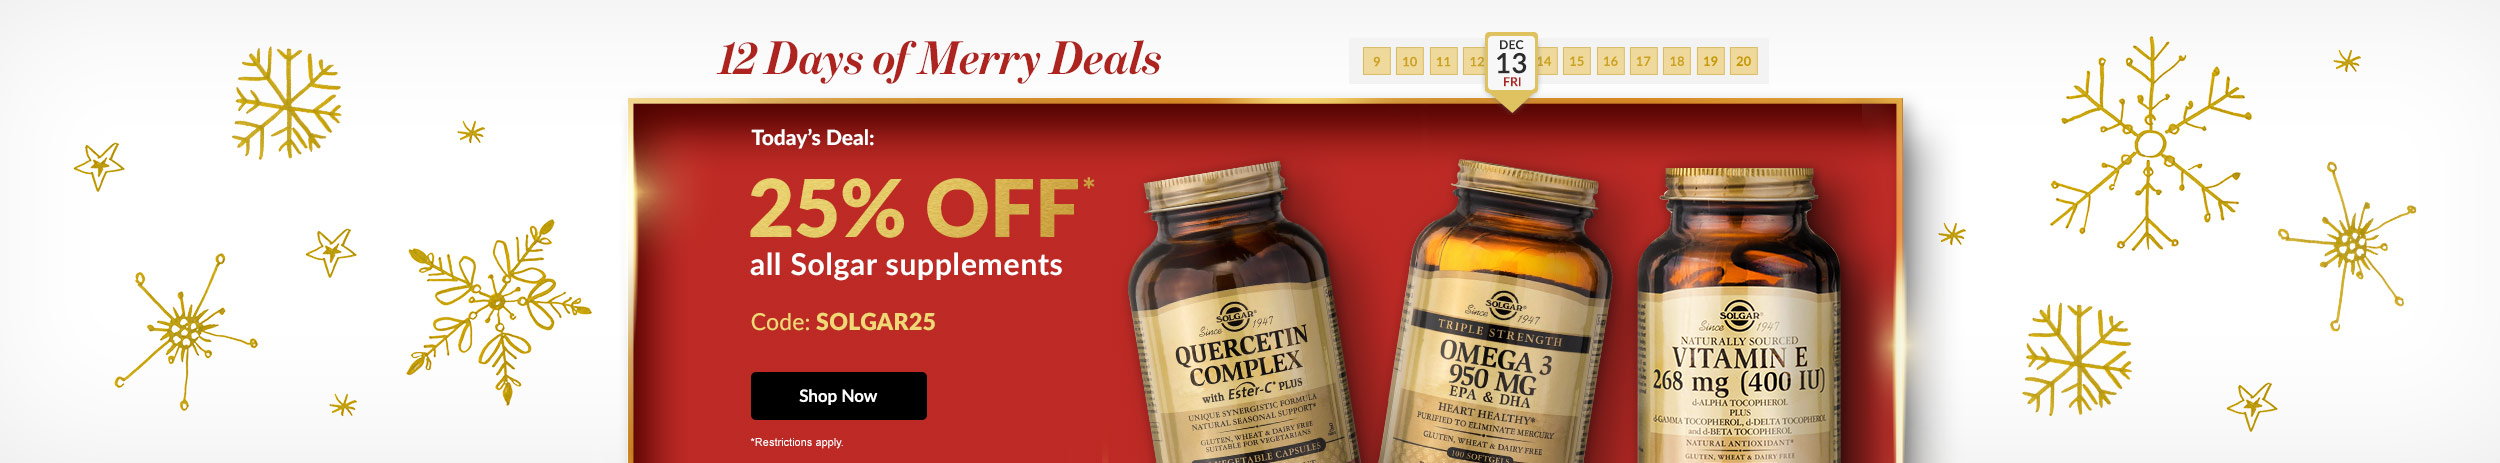 12 Days of Merry Deals: 25% OFF* all Solgar Supplements - Code: SOLGAR25. *Exclusions apply.